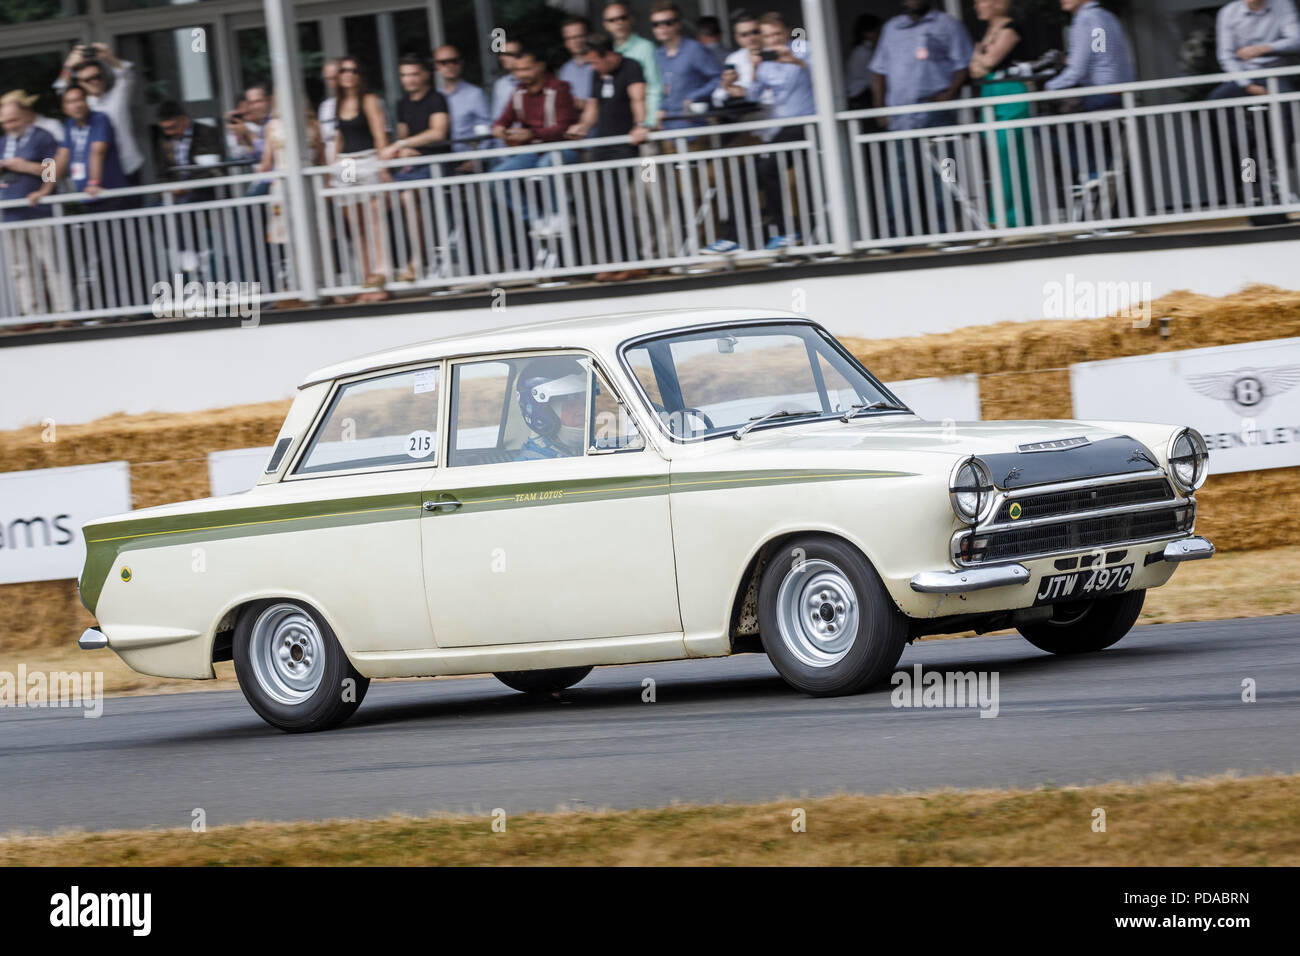 1965 Ford-Lotus Consul Cortina Mk1 BSCC car with driver Stuart Clark at the 2018 Goodwood Festival of Speed, Sussex, UK. Stock Photo